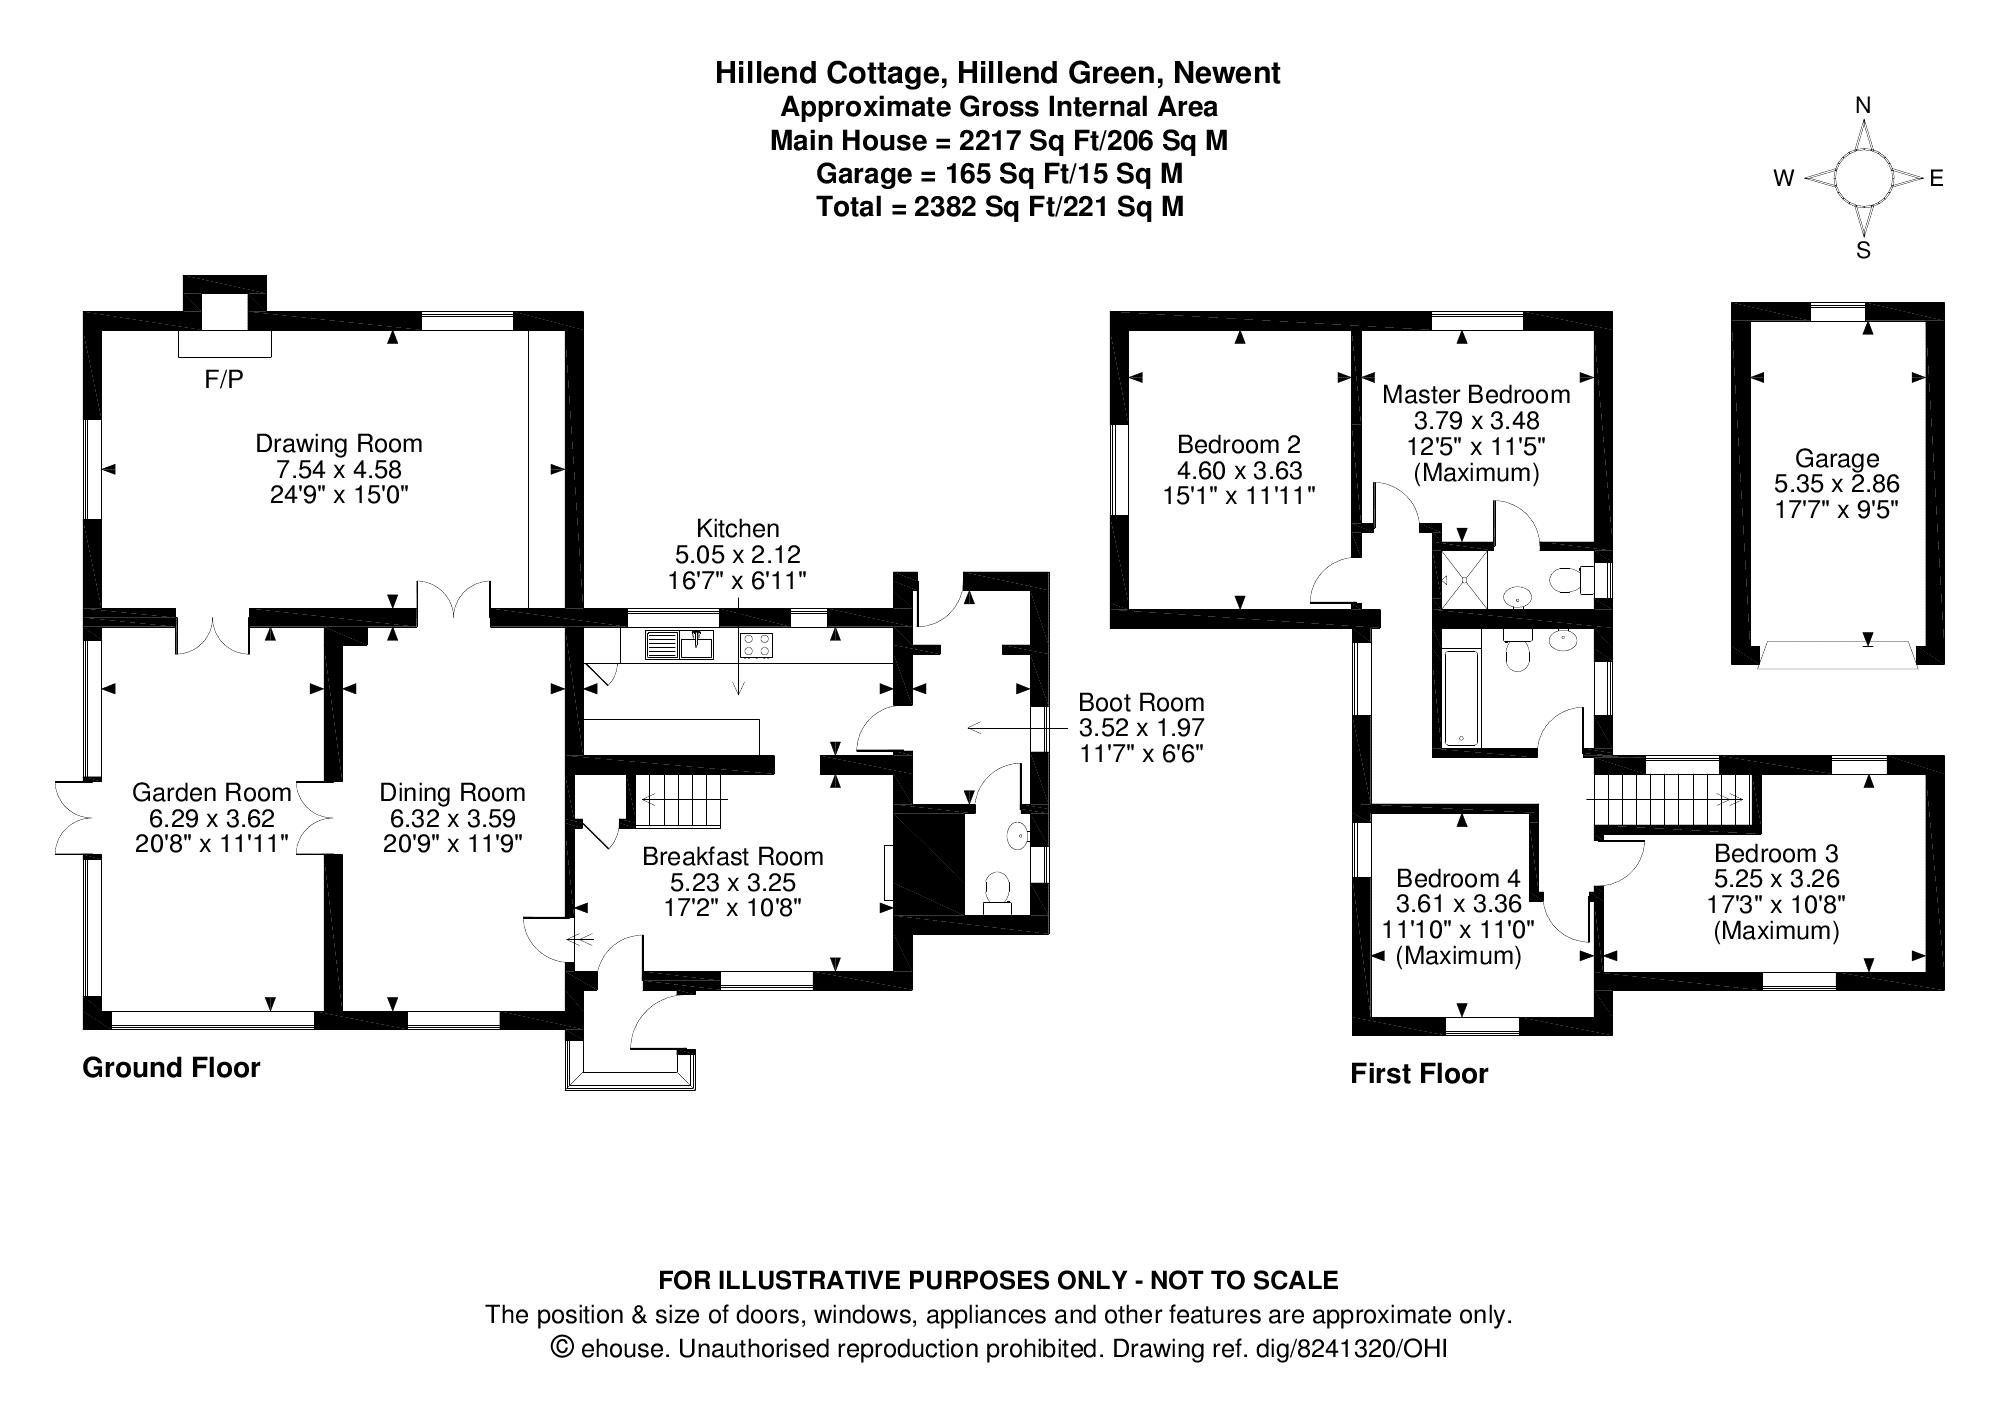 Hillend Cottage Floorplan